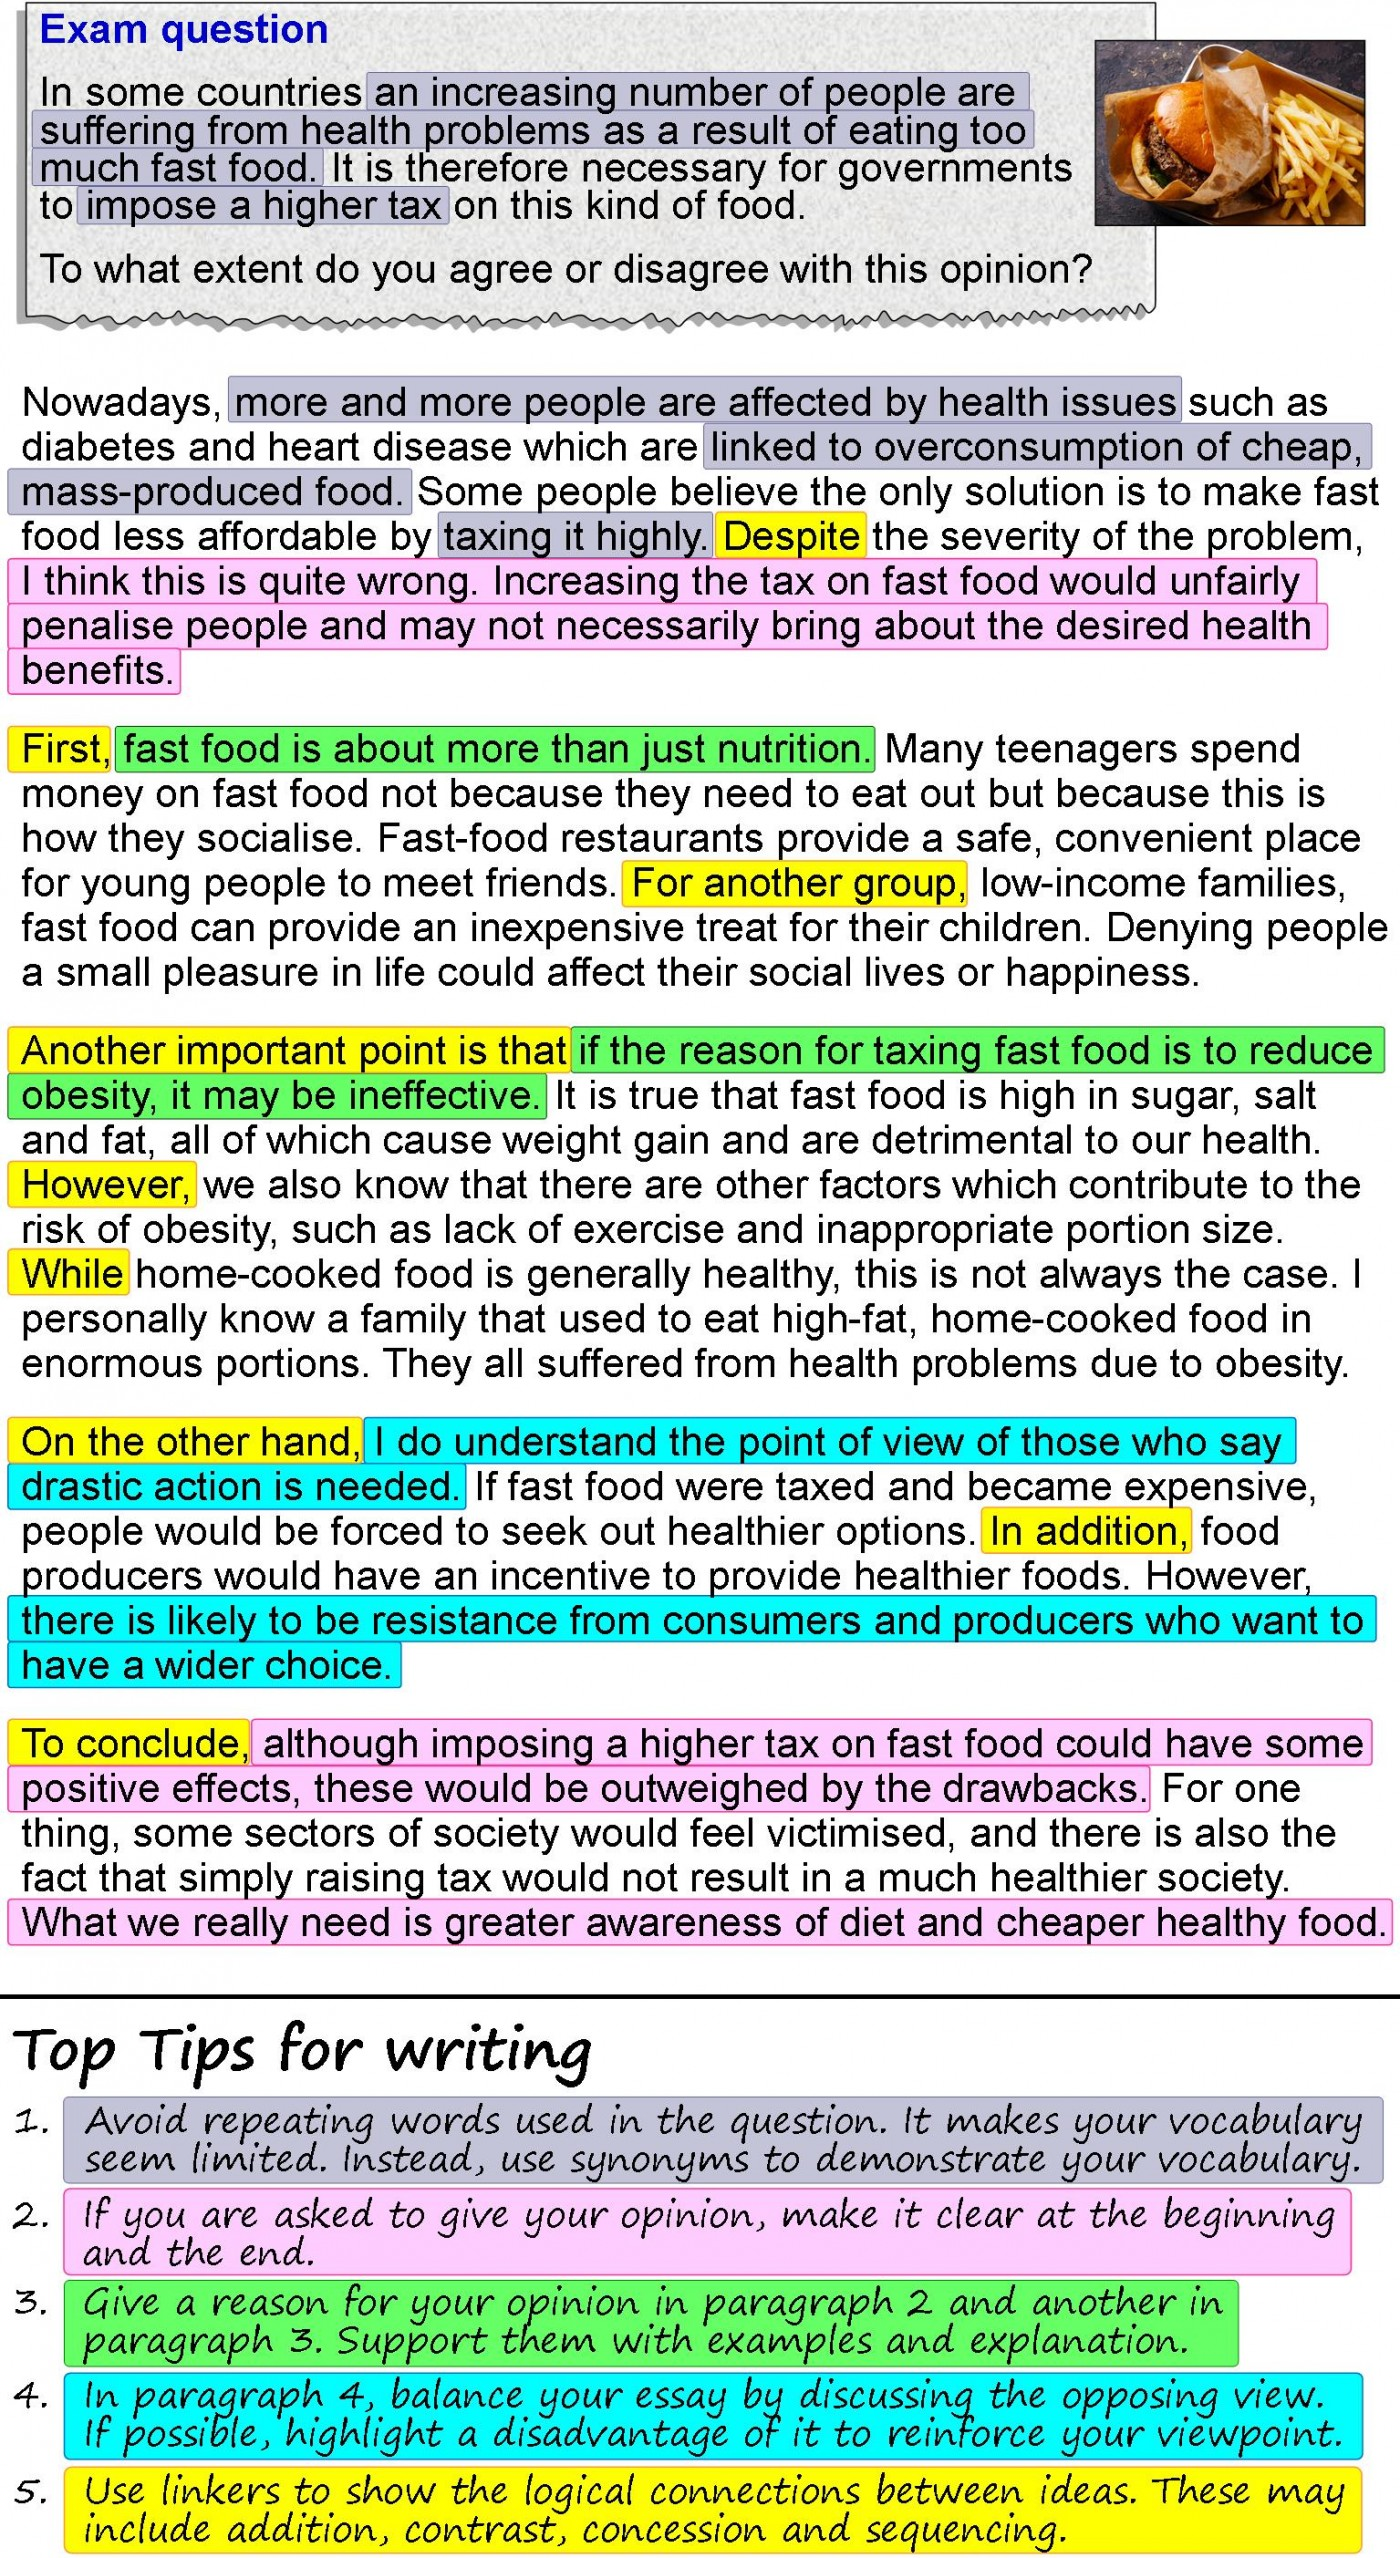 001 Opinion Essay About Fast Food Example An 4 Unbelievable Short British Council 1400